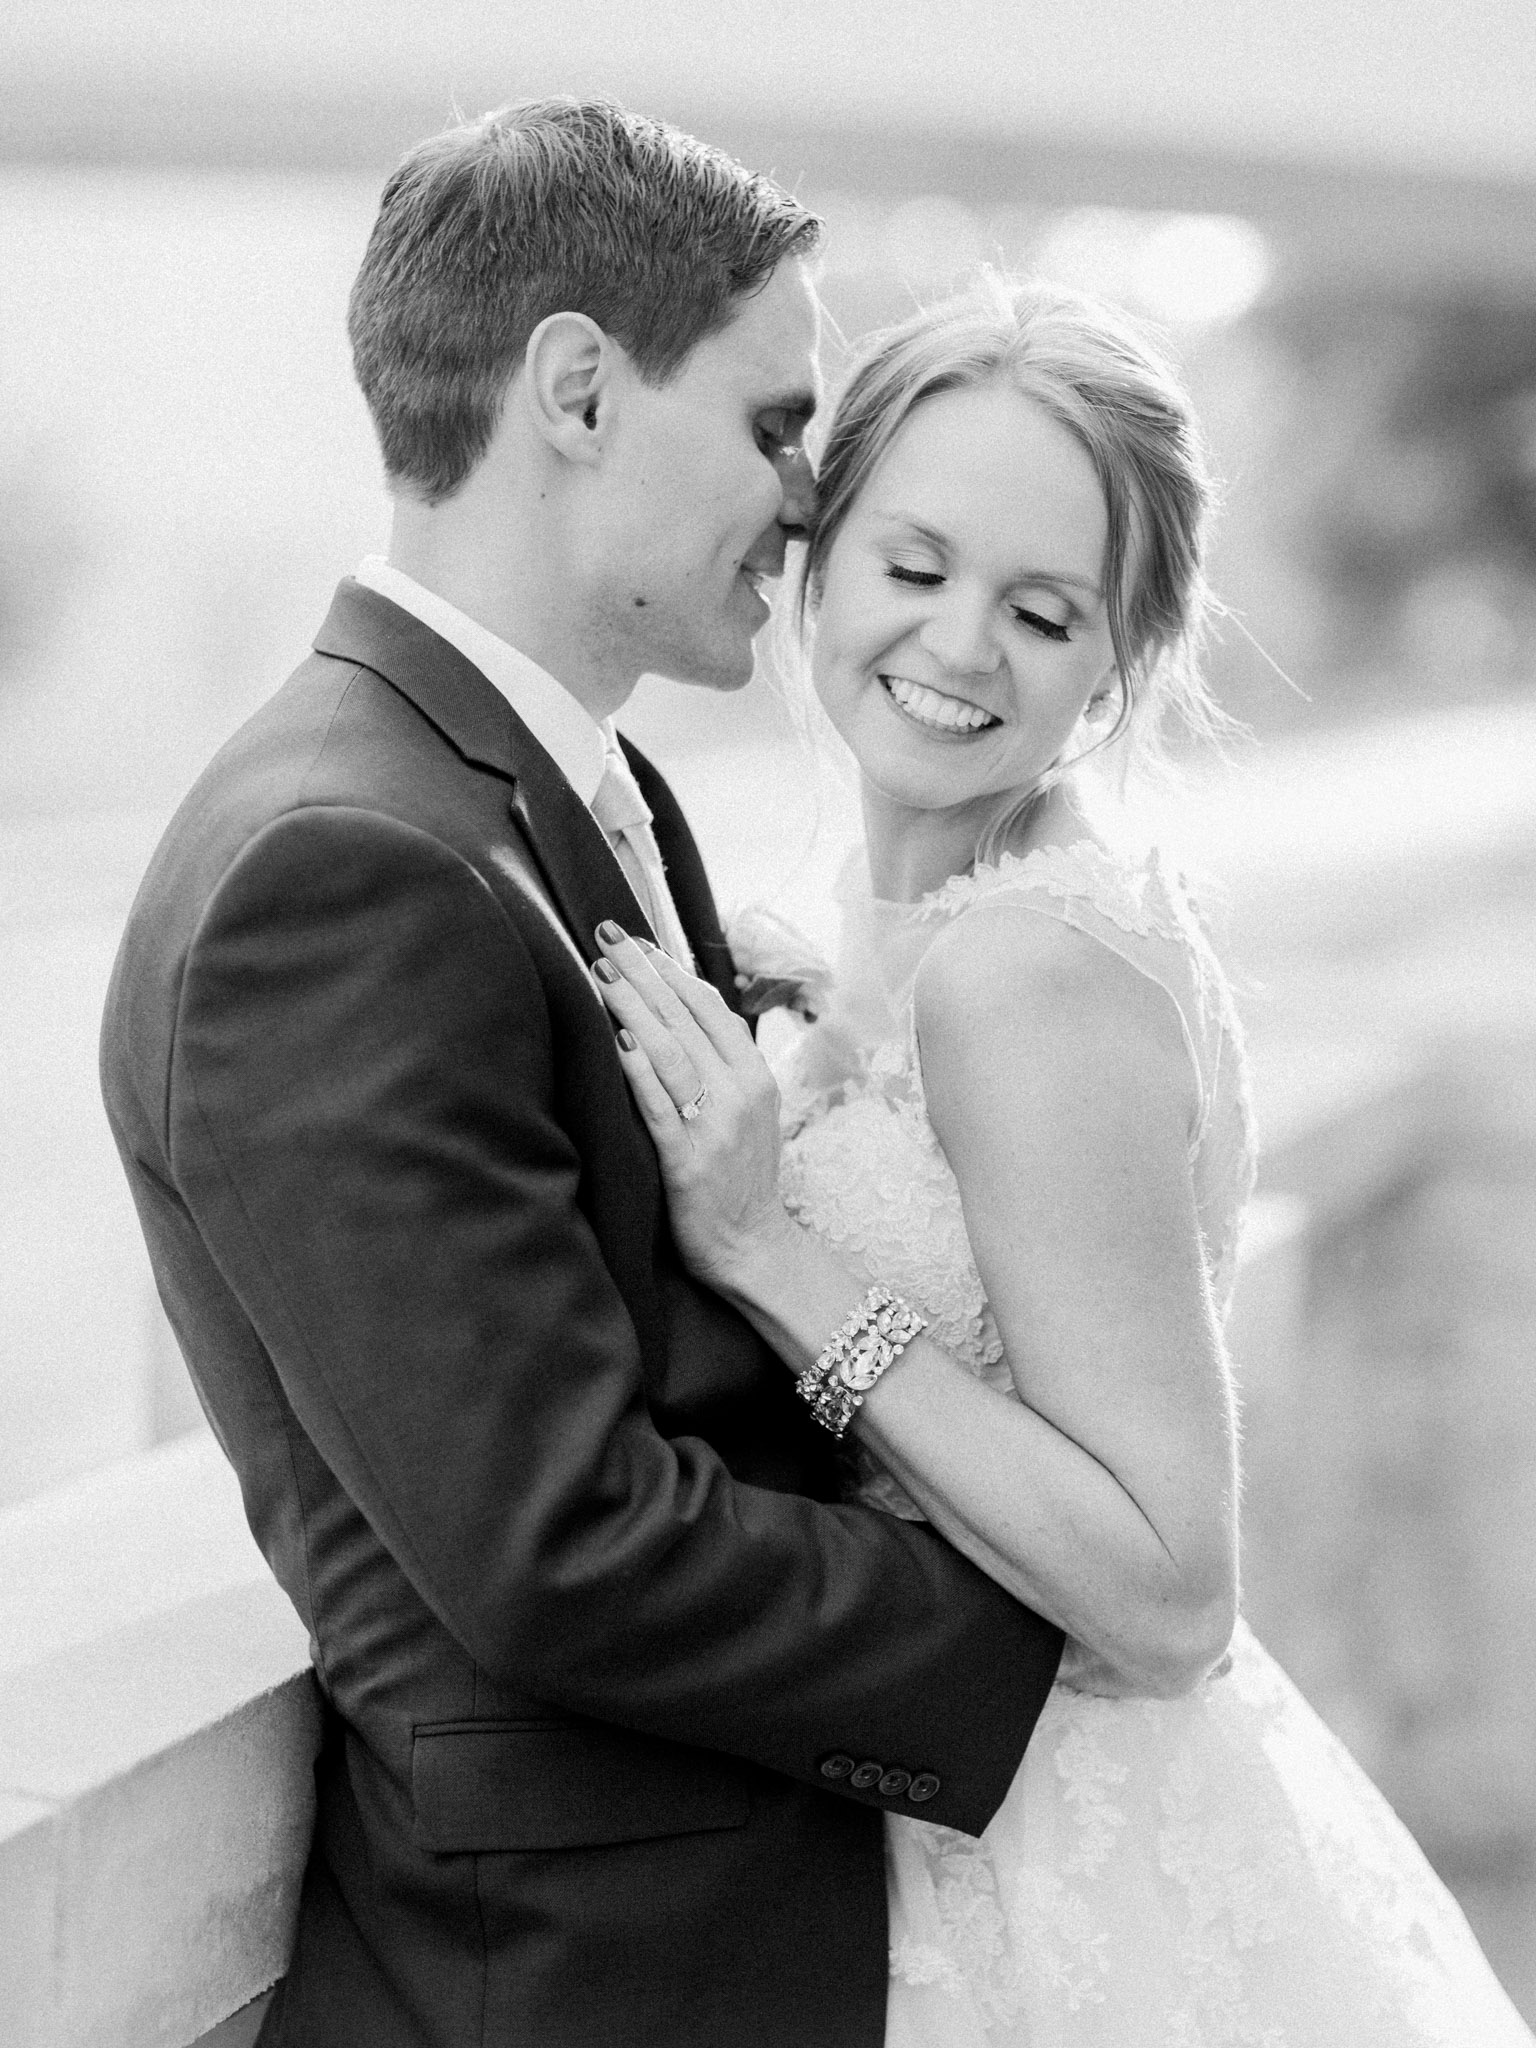 Fort Worth 809 at Vickery Photographer - Wedding Photography